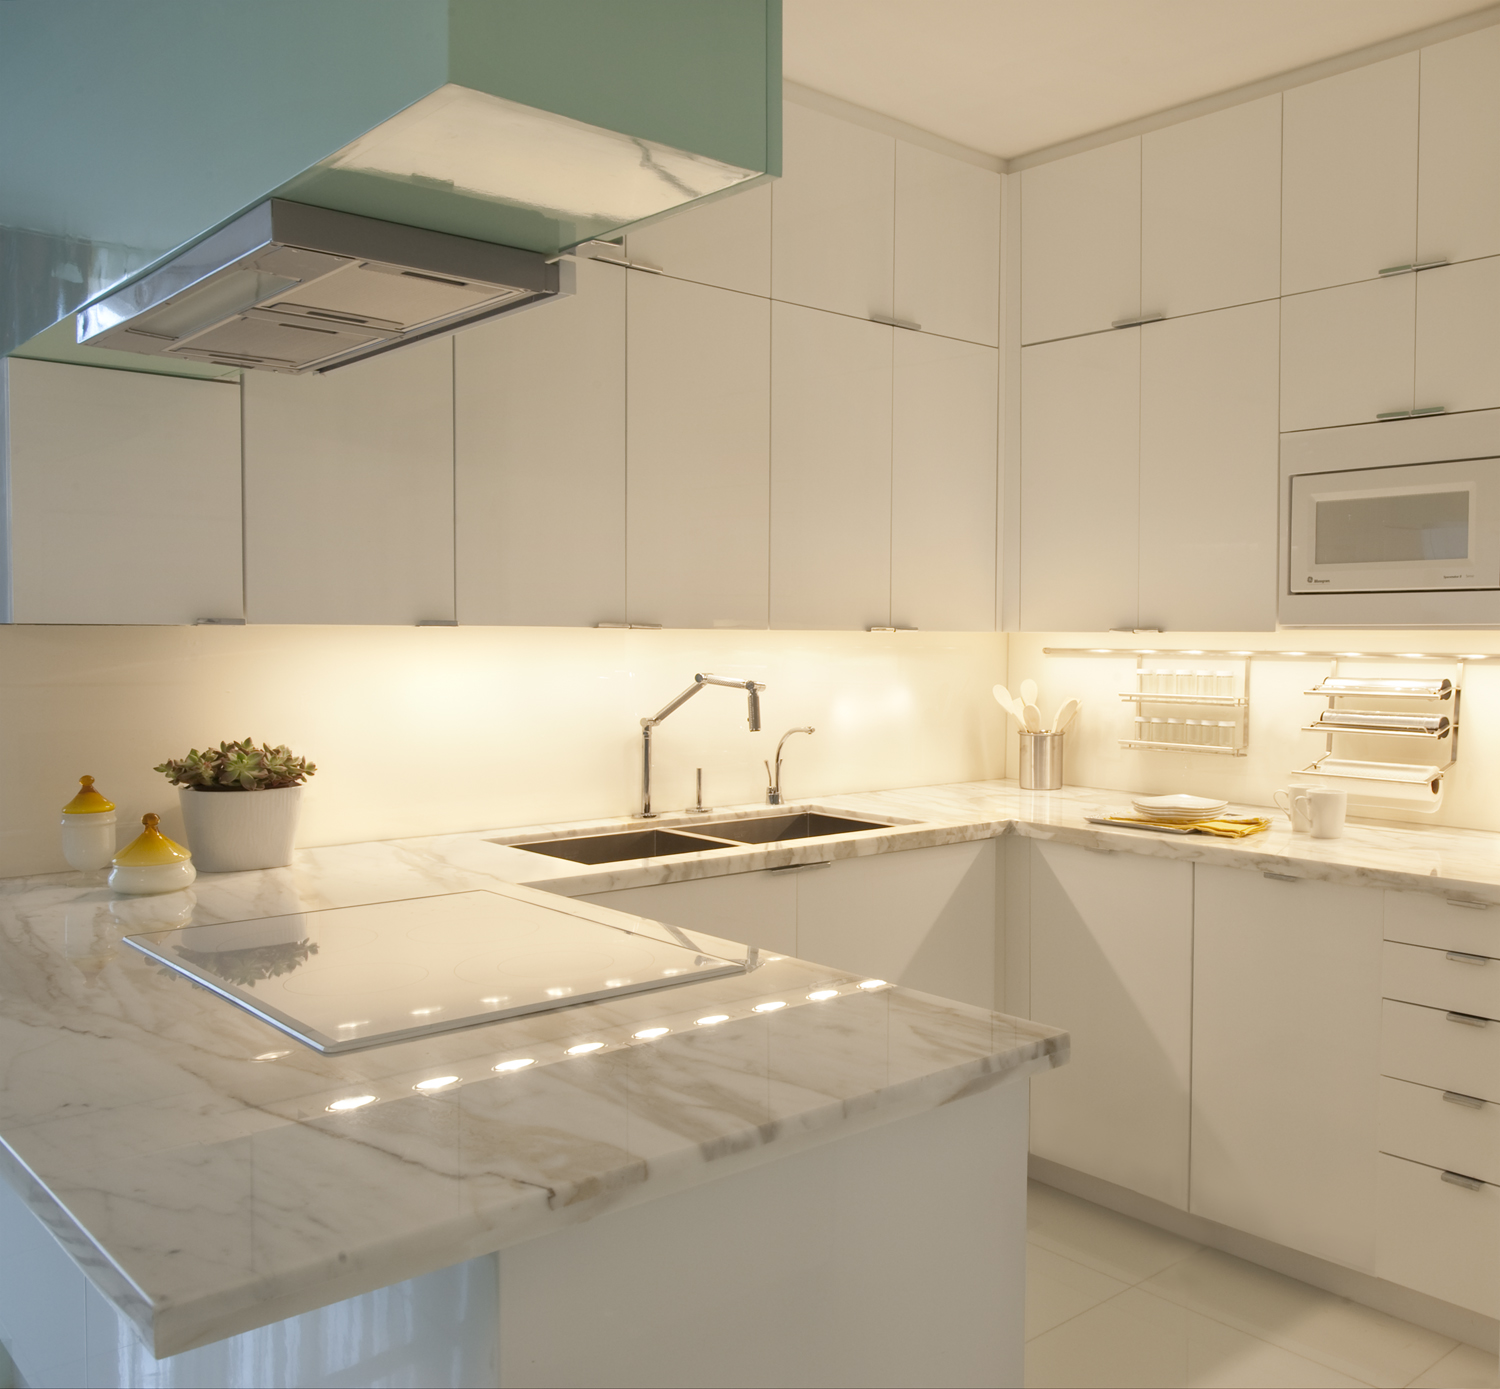 Apartment Kitchen Renovation Miami Beach Apartment Avram Rusu Studio